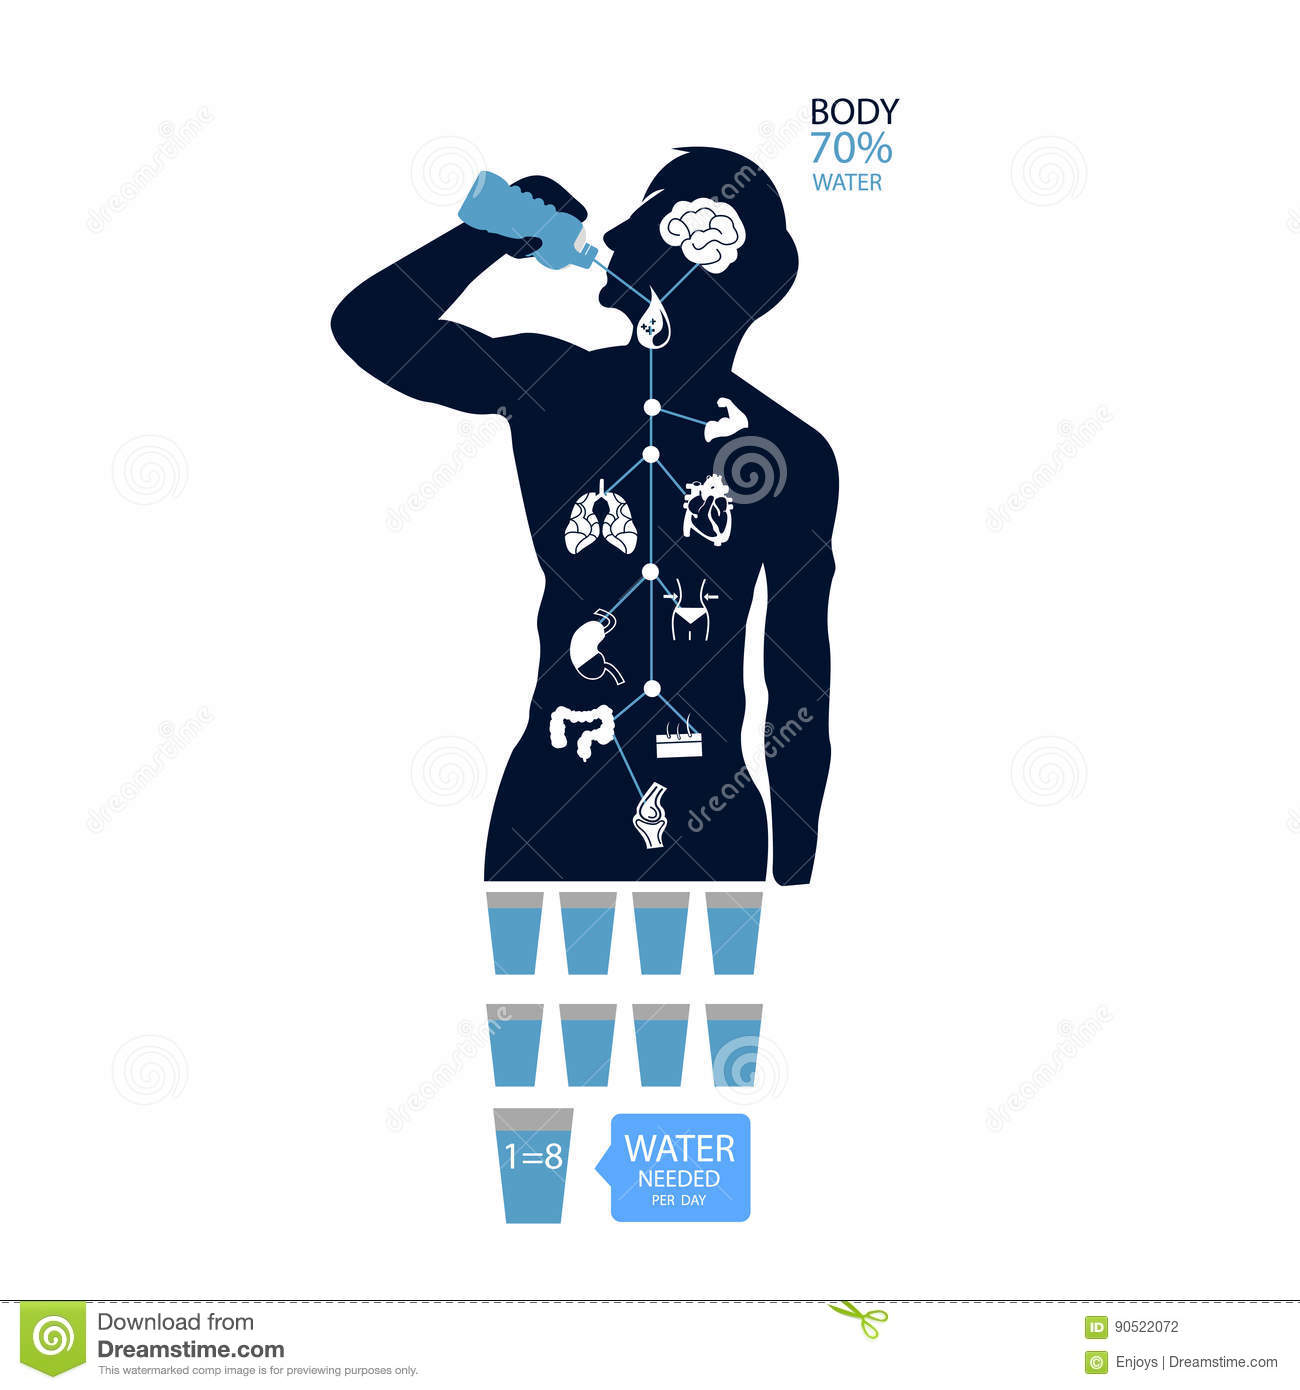 body health infographic illustration drink water icon